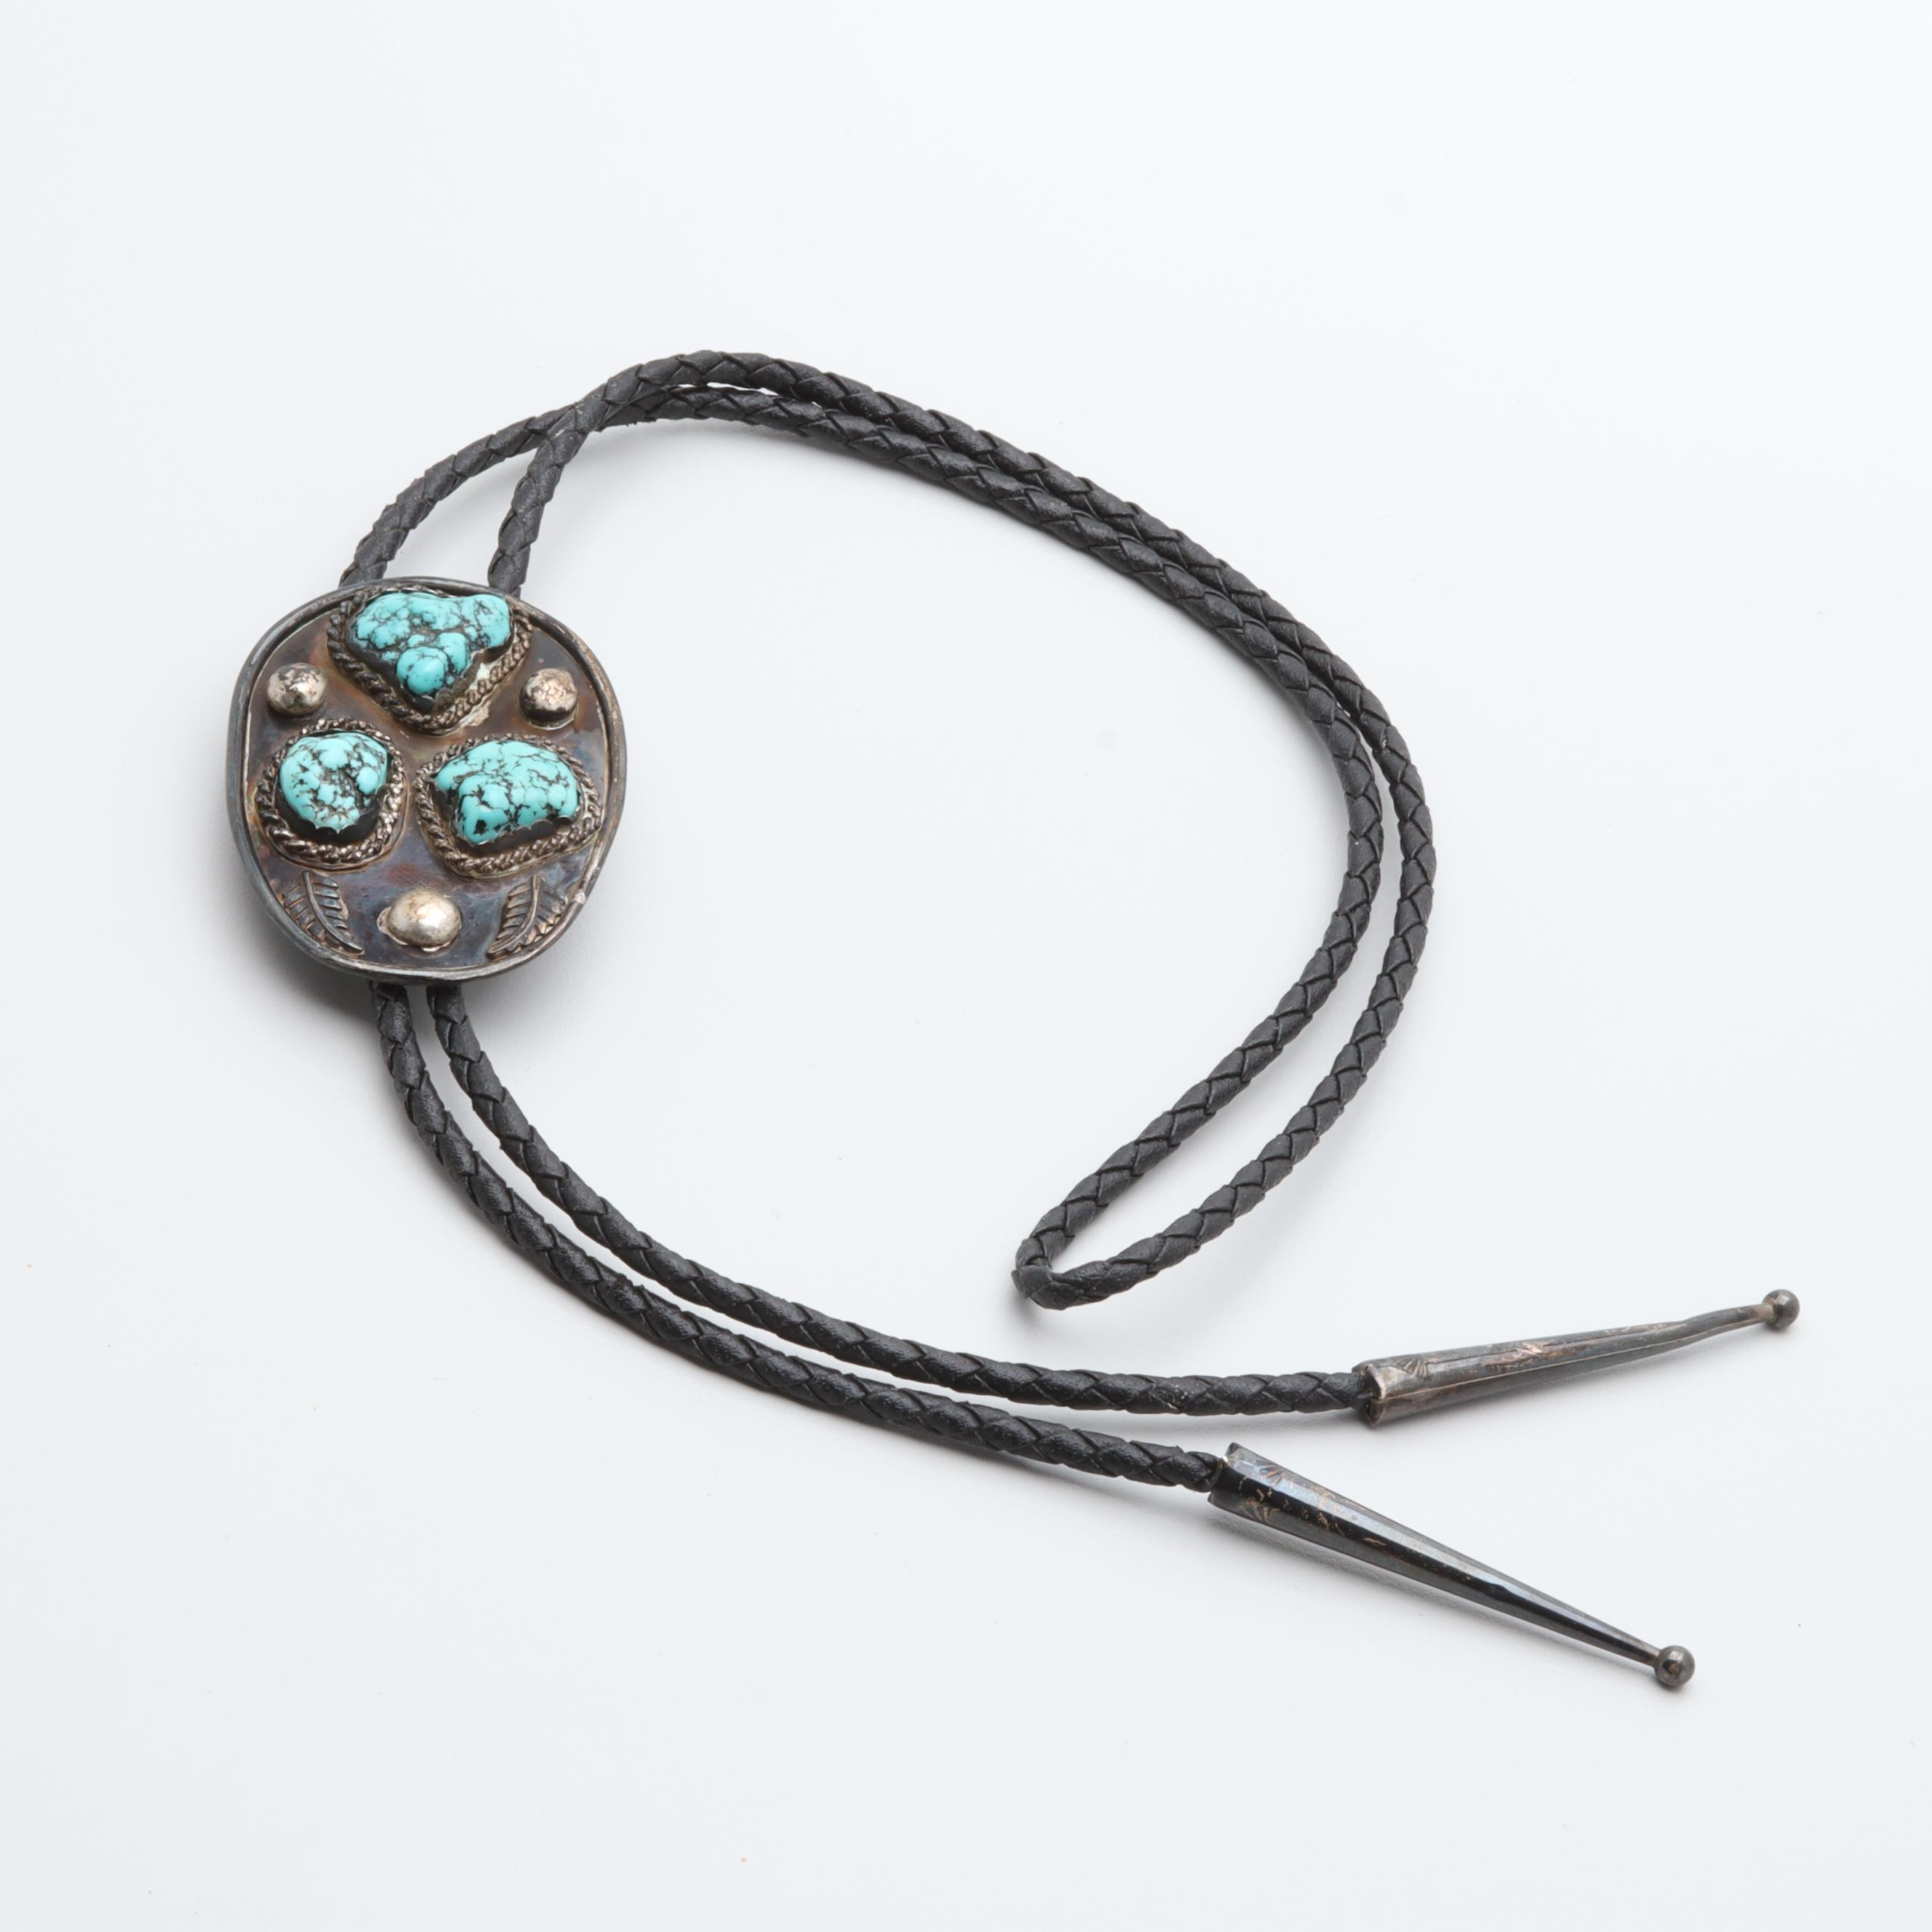 Southwestern Style Sterling Silver Turquoise Bolo Tie